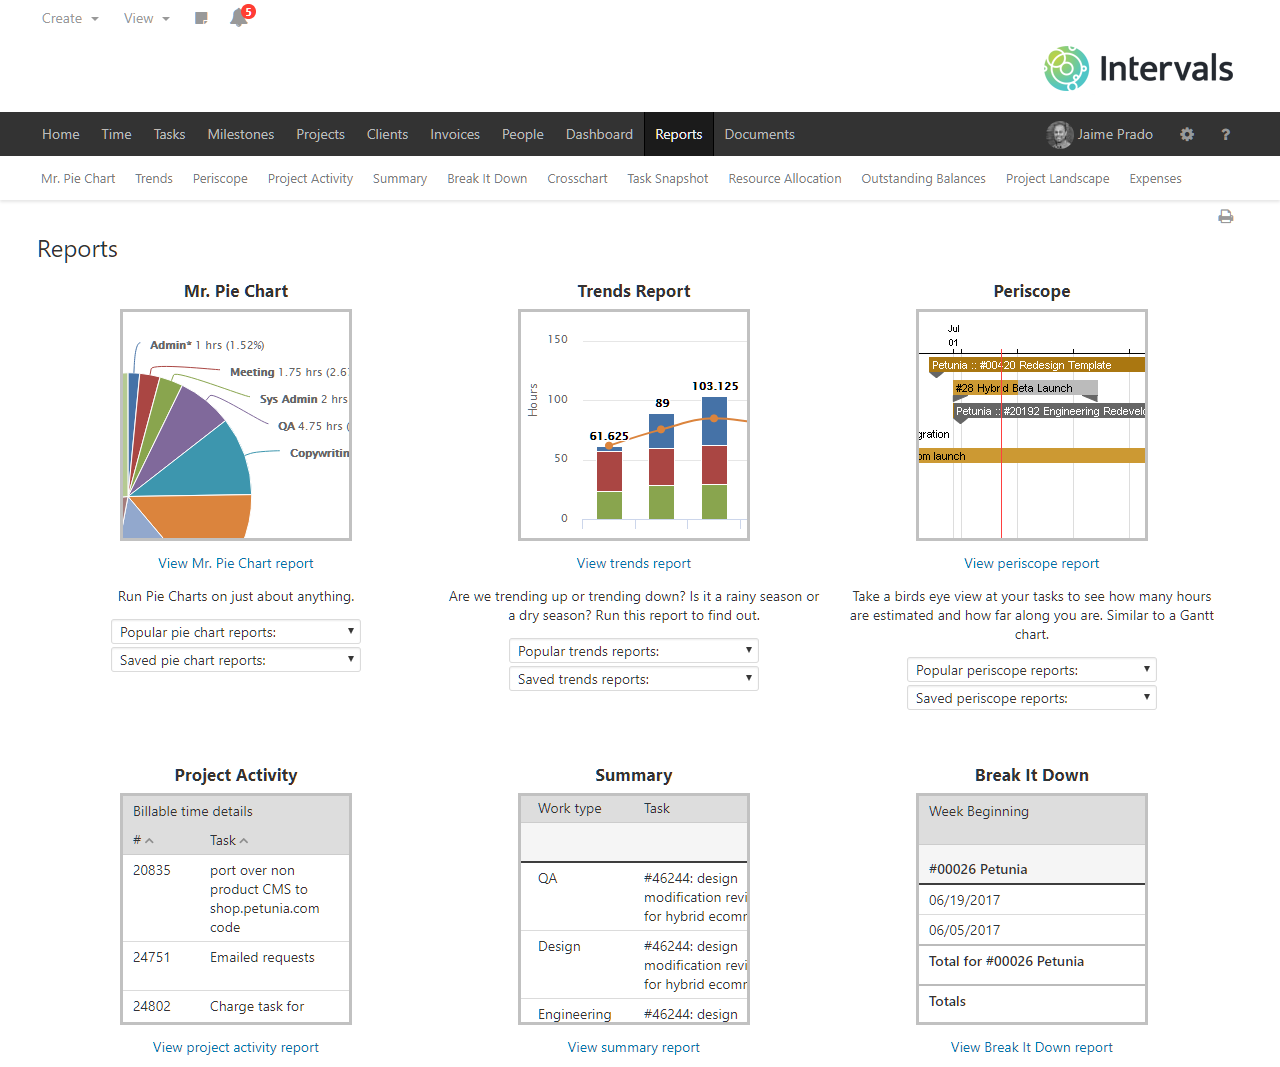 Intervals Software - Reporting to know and show where your efforts are going